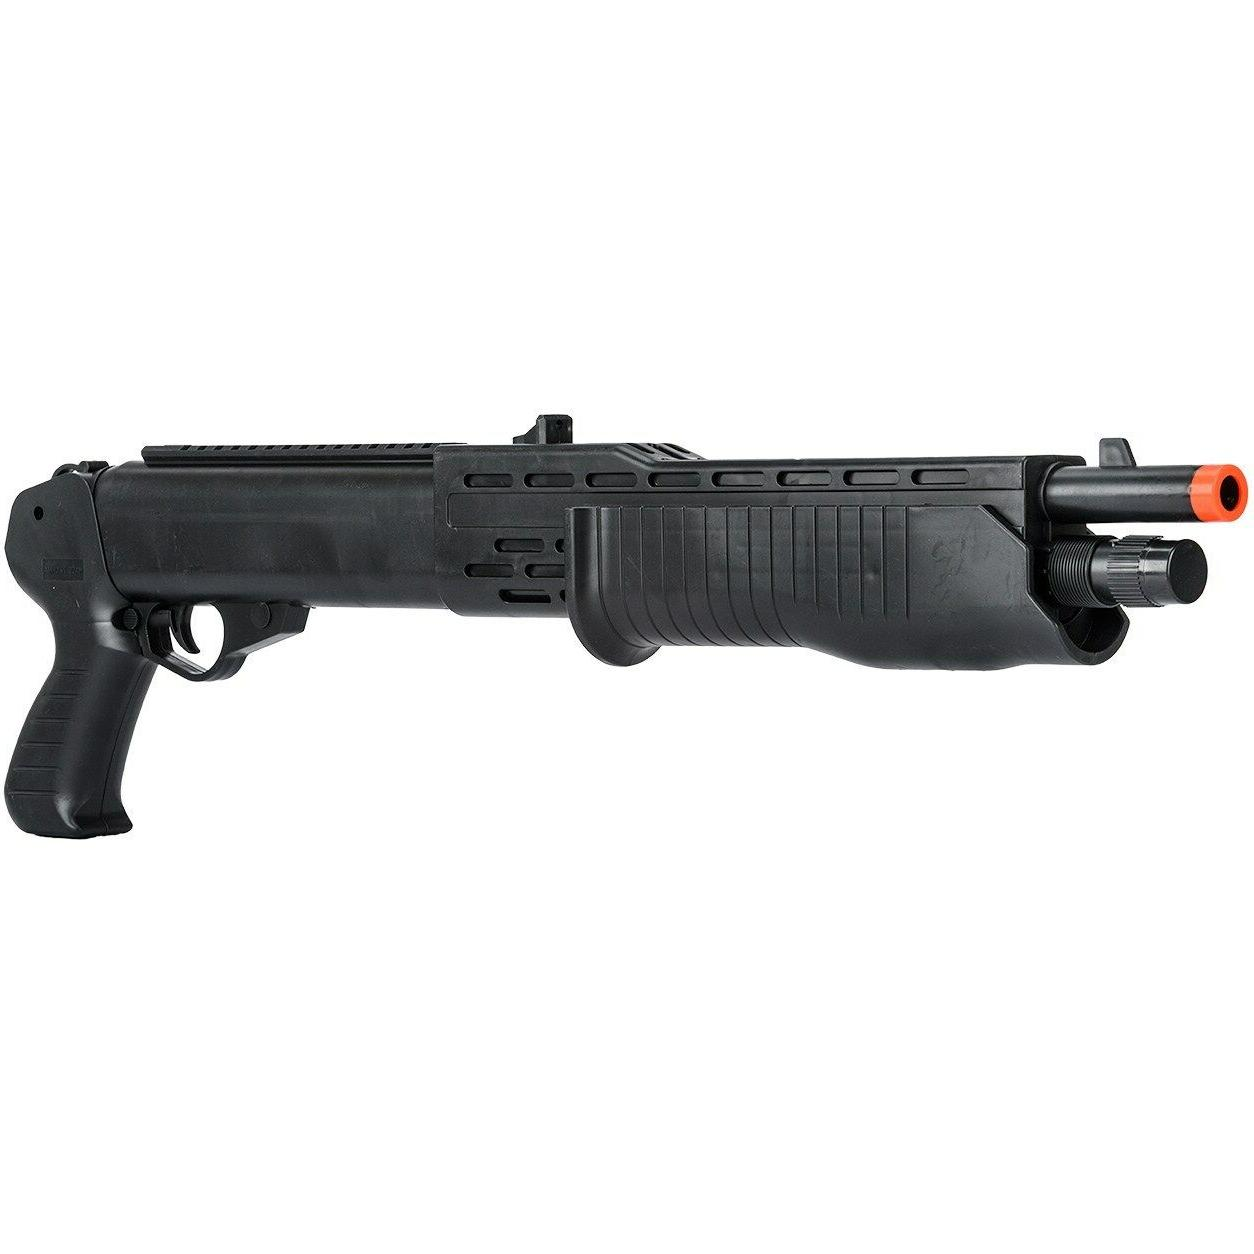 ACTION SPRING RIFLE 6mm BB BBs